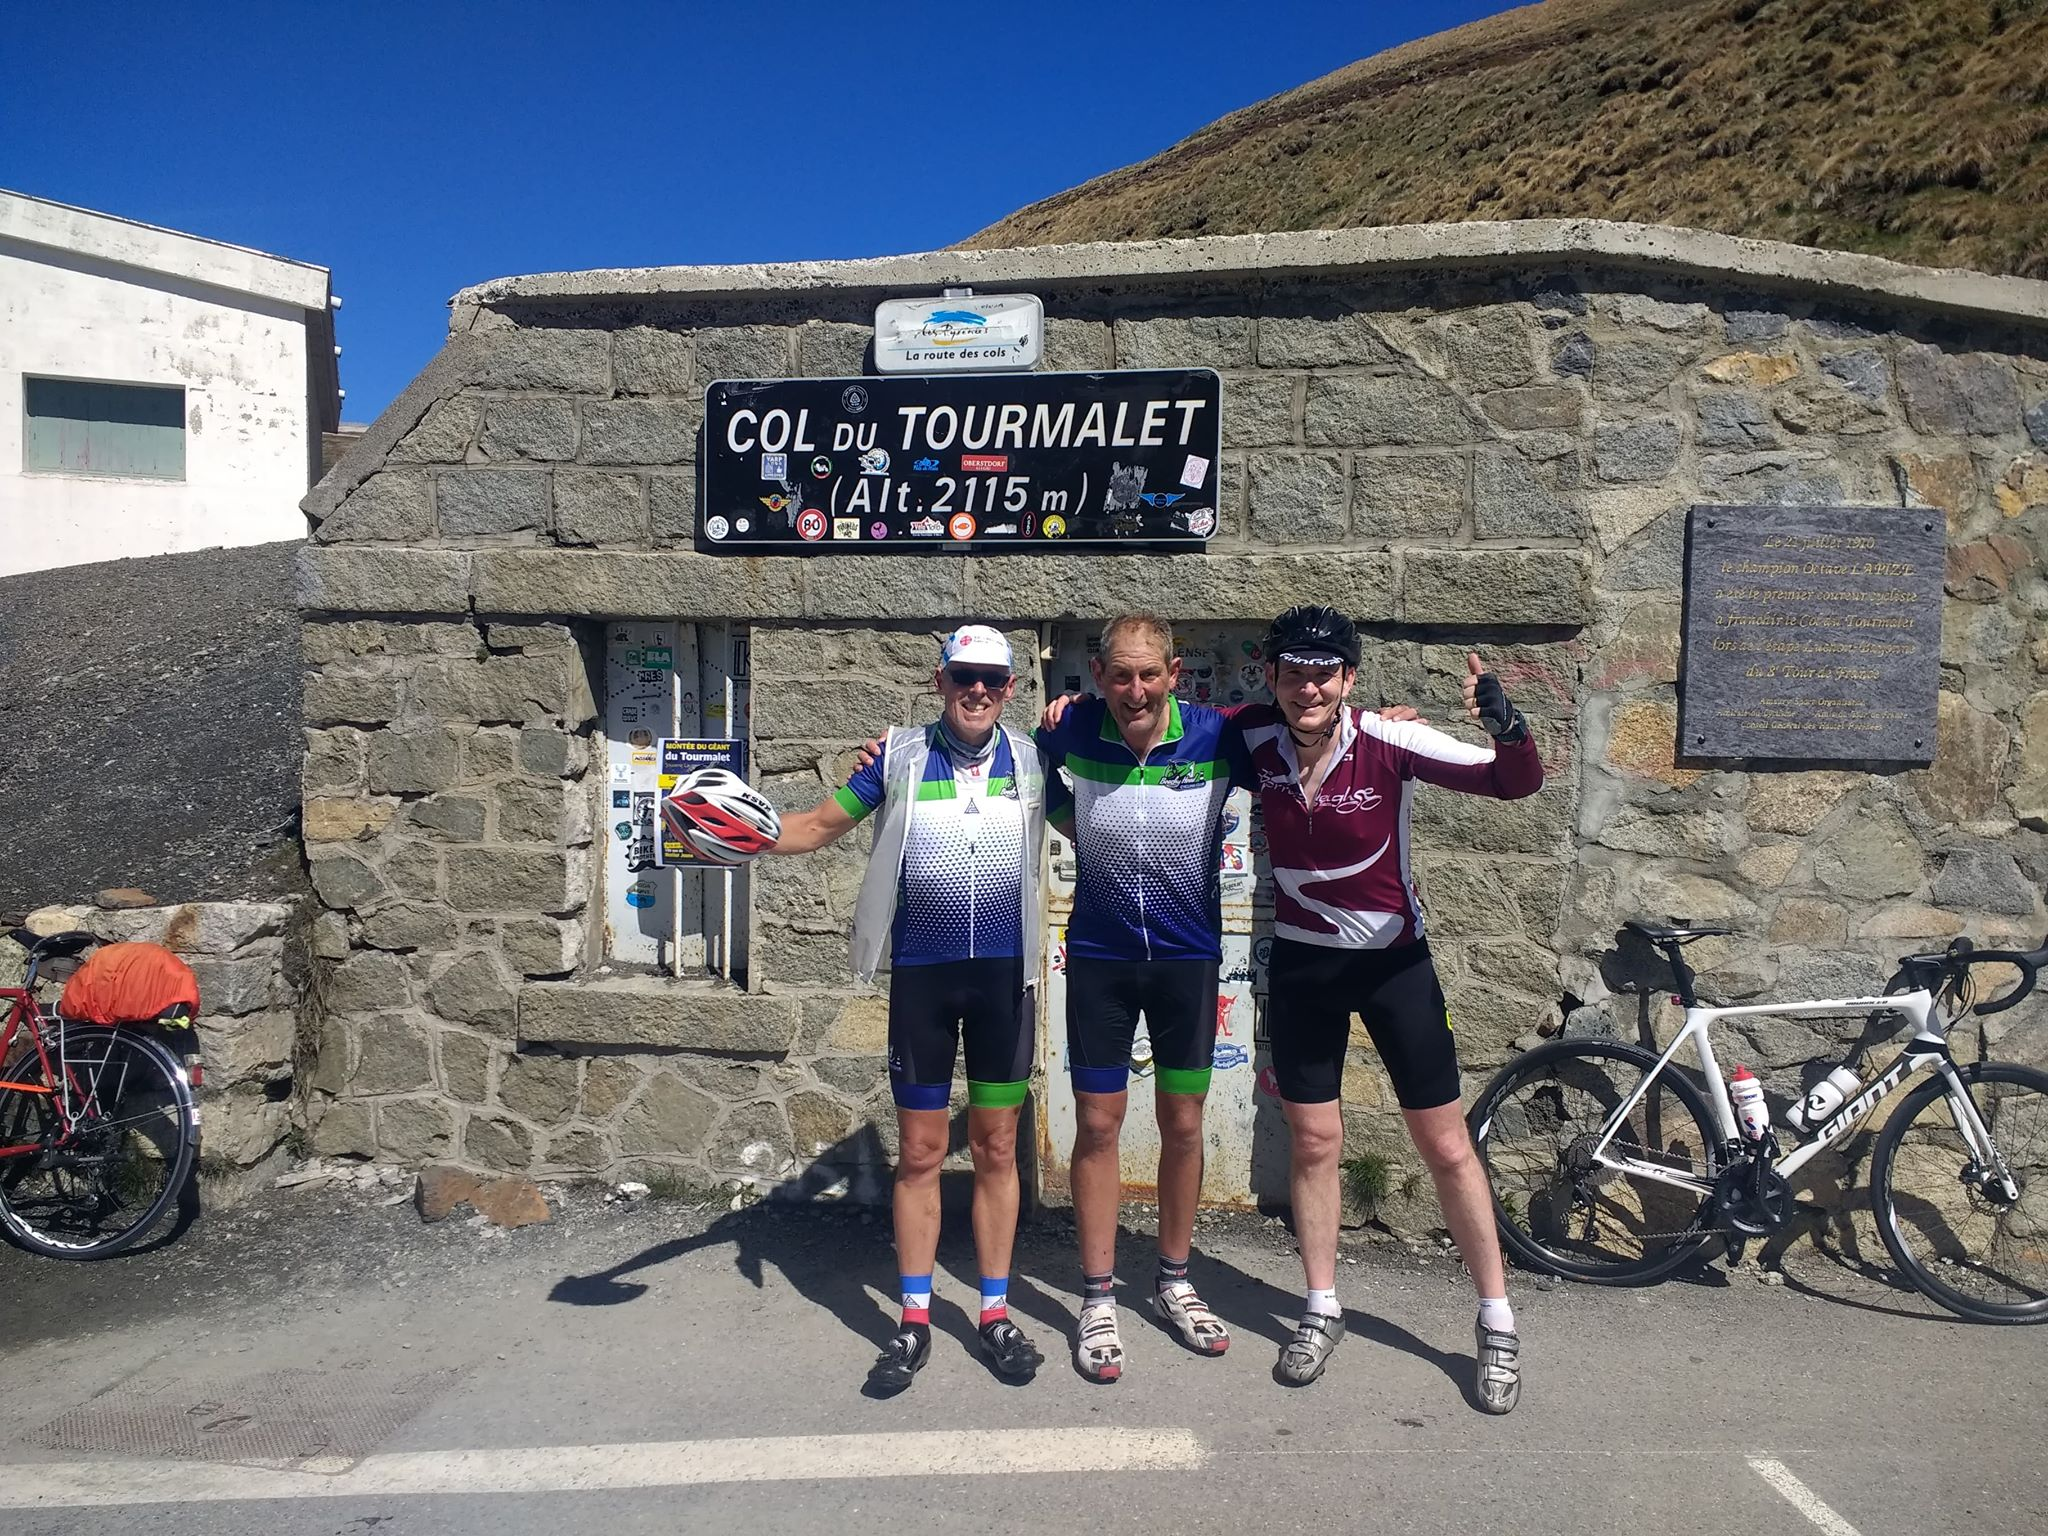 Justin and Marcel on the Col du Tourmalet